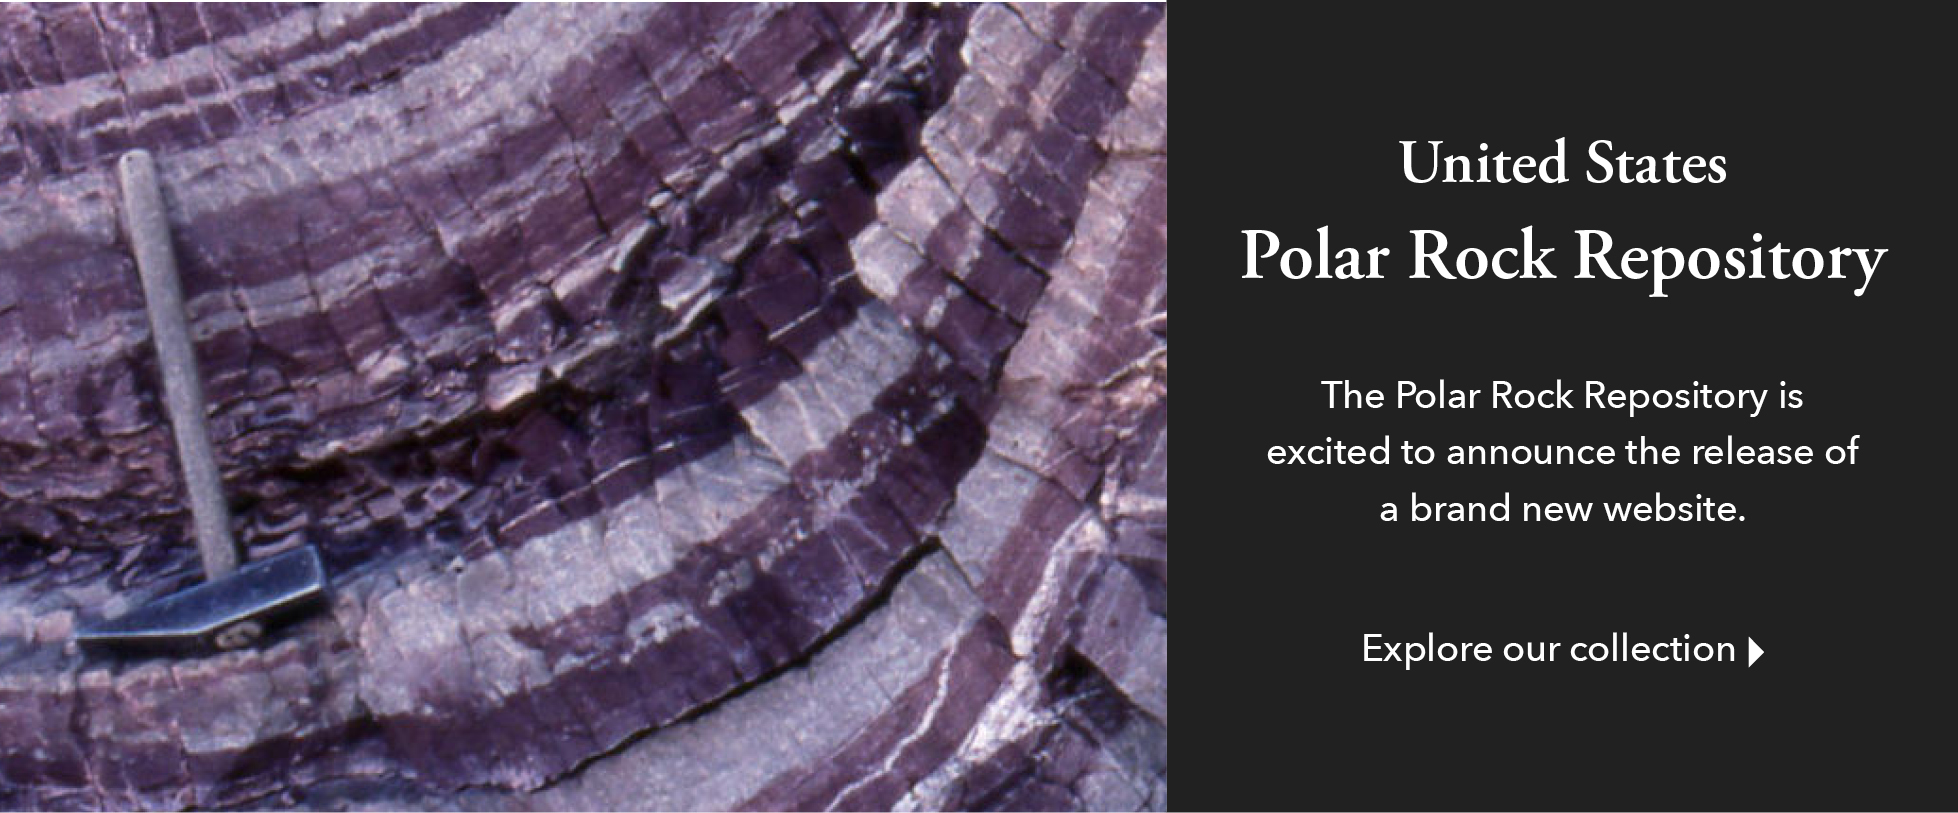 Explore the Polar Rock Repository